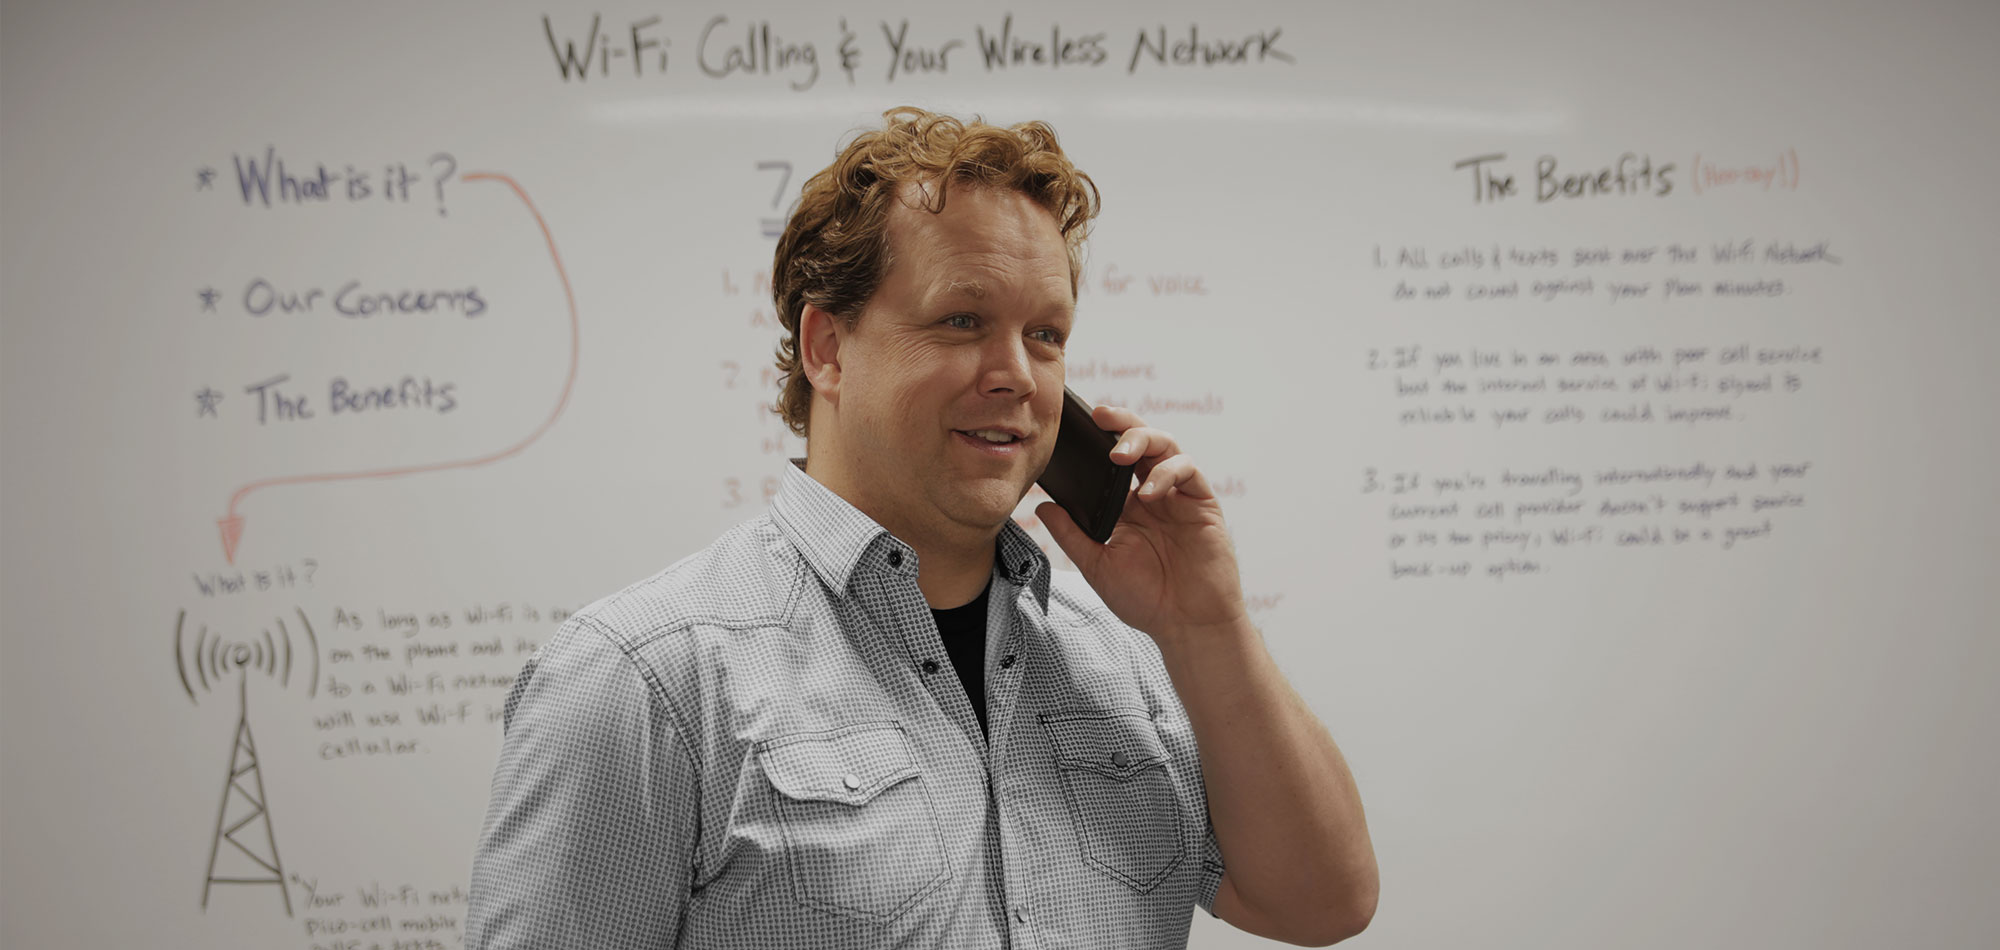 Whiteboard Wednesday: Wi-Fi Calling & Your Wireless Network Part 1 [Video]